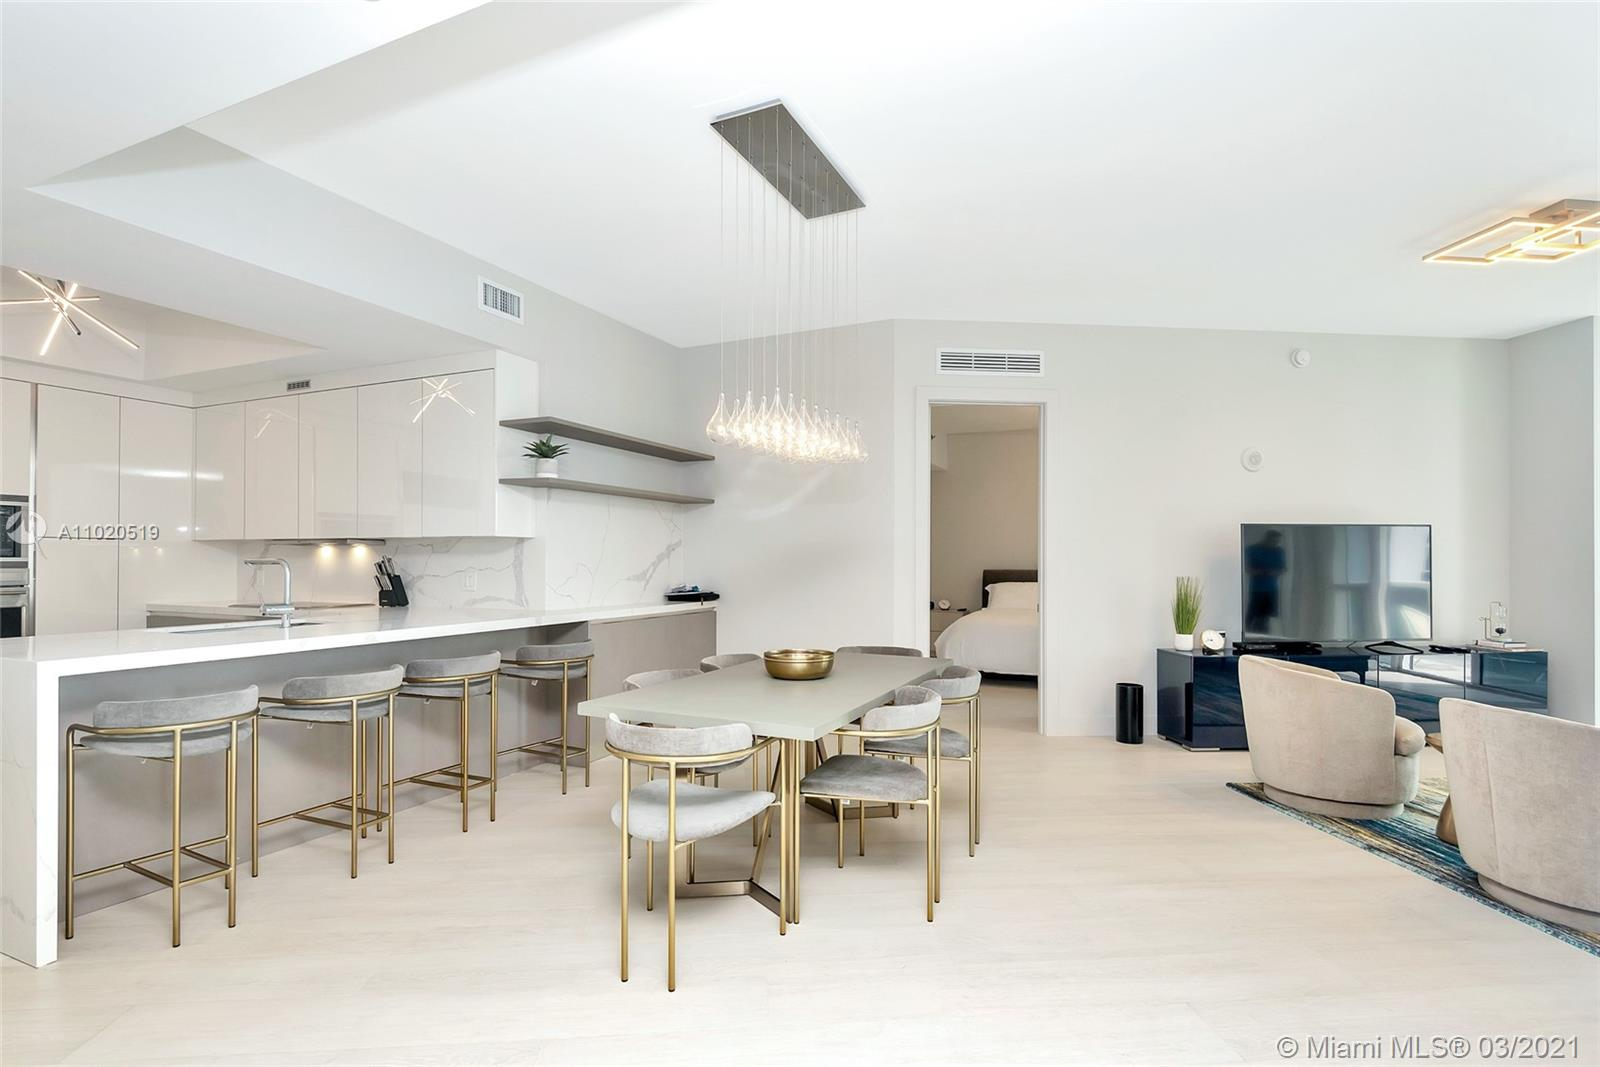 AMAZING OPPORTUNITY FOR RENOVATED / FURNISHED DEAL AT TT1. Unit 2107 is a design masterpiece with porcelain floors throughout, Xtra Hi Hats lightning and modern light fixtures in every room, BRAND NEW Italian Kitchen with beautiful counter top extended to the wall with shelving and extra storage, new pocket doors to ease access to bathroom # 2 and use of living areas, new custom made closets and lights design. Featuring 2016 SQFT of living areas with plenty of space for entertaining and enjoyment, 2 Beds + DEN and 3 full bathrooms, private foyer and some extra storage area. Trump Tower 1 offers full amenities and service at the beach with complimentary chairs, umbrellas & towels. State of the art gym, 24hrs security, valet parking and more. Call listing agent for showings and information!